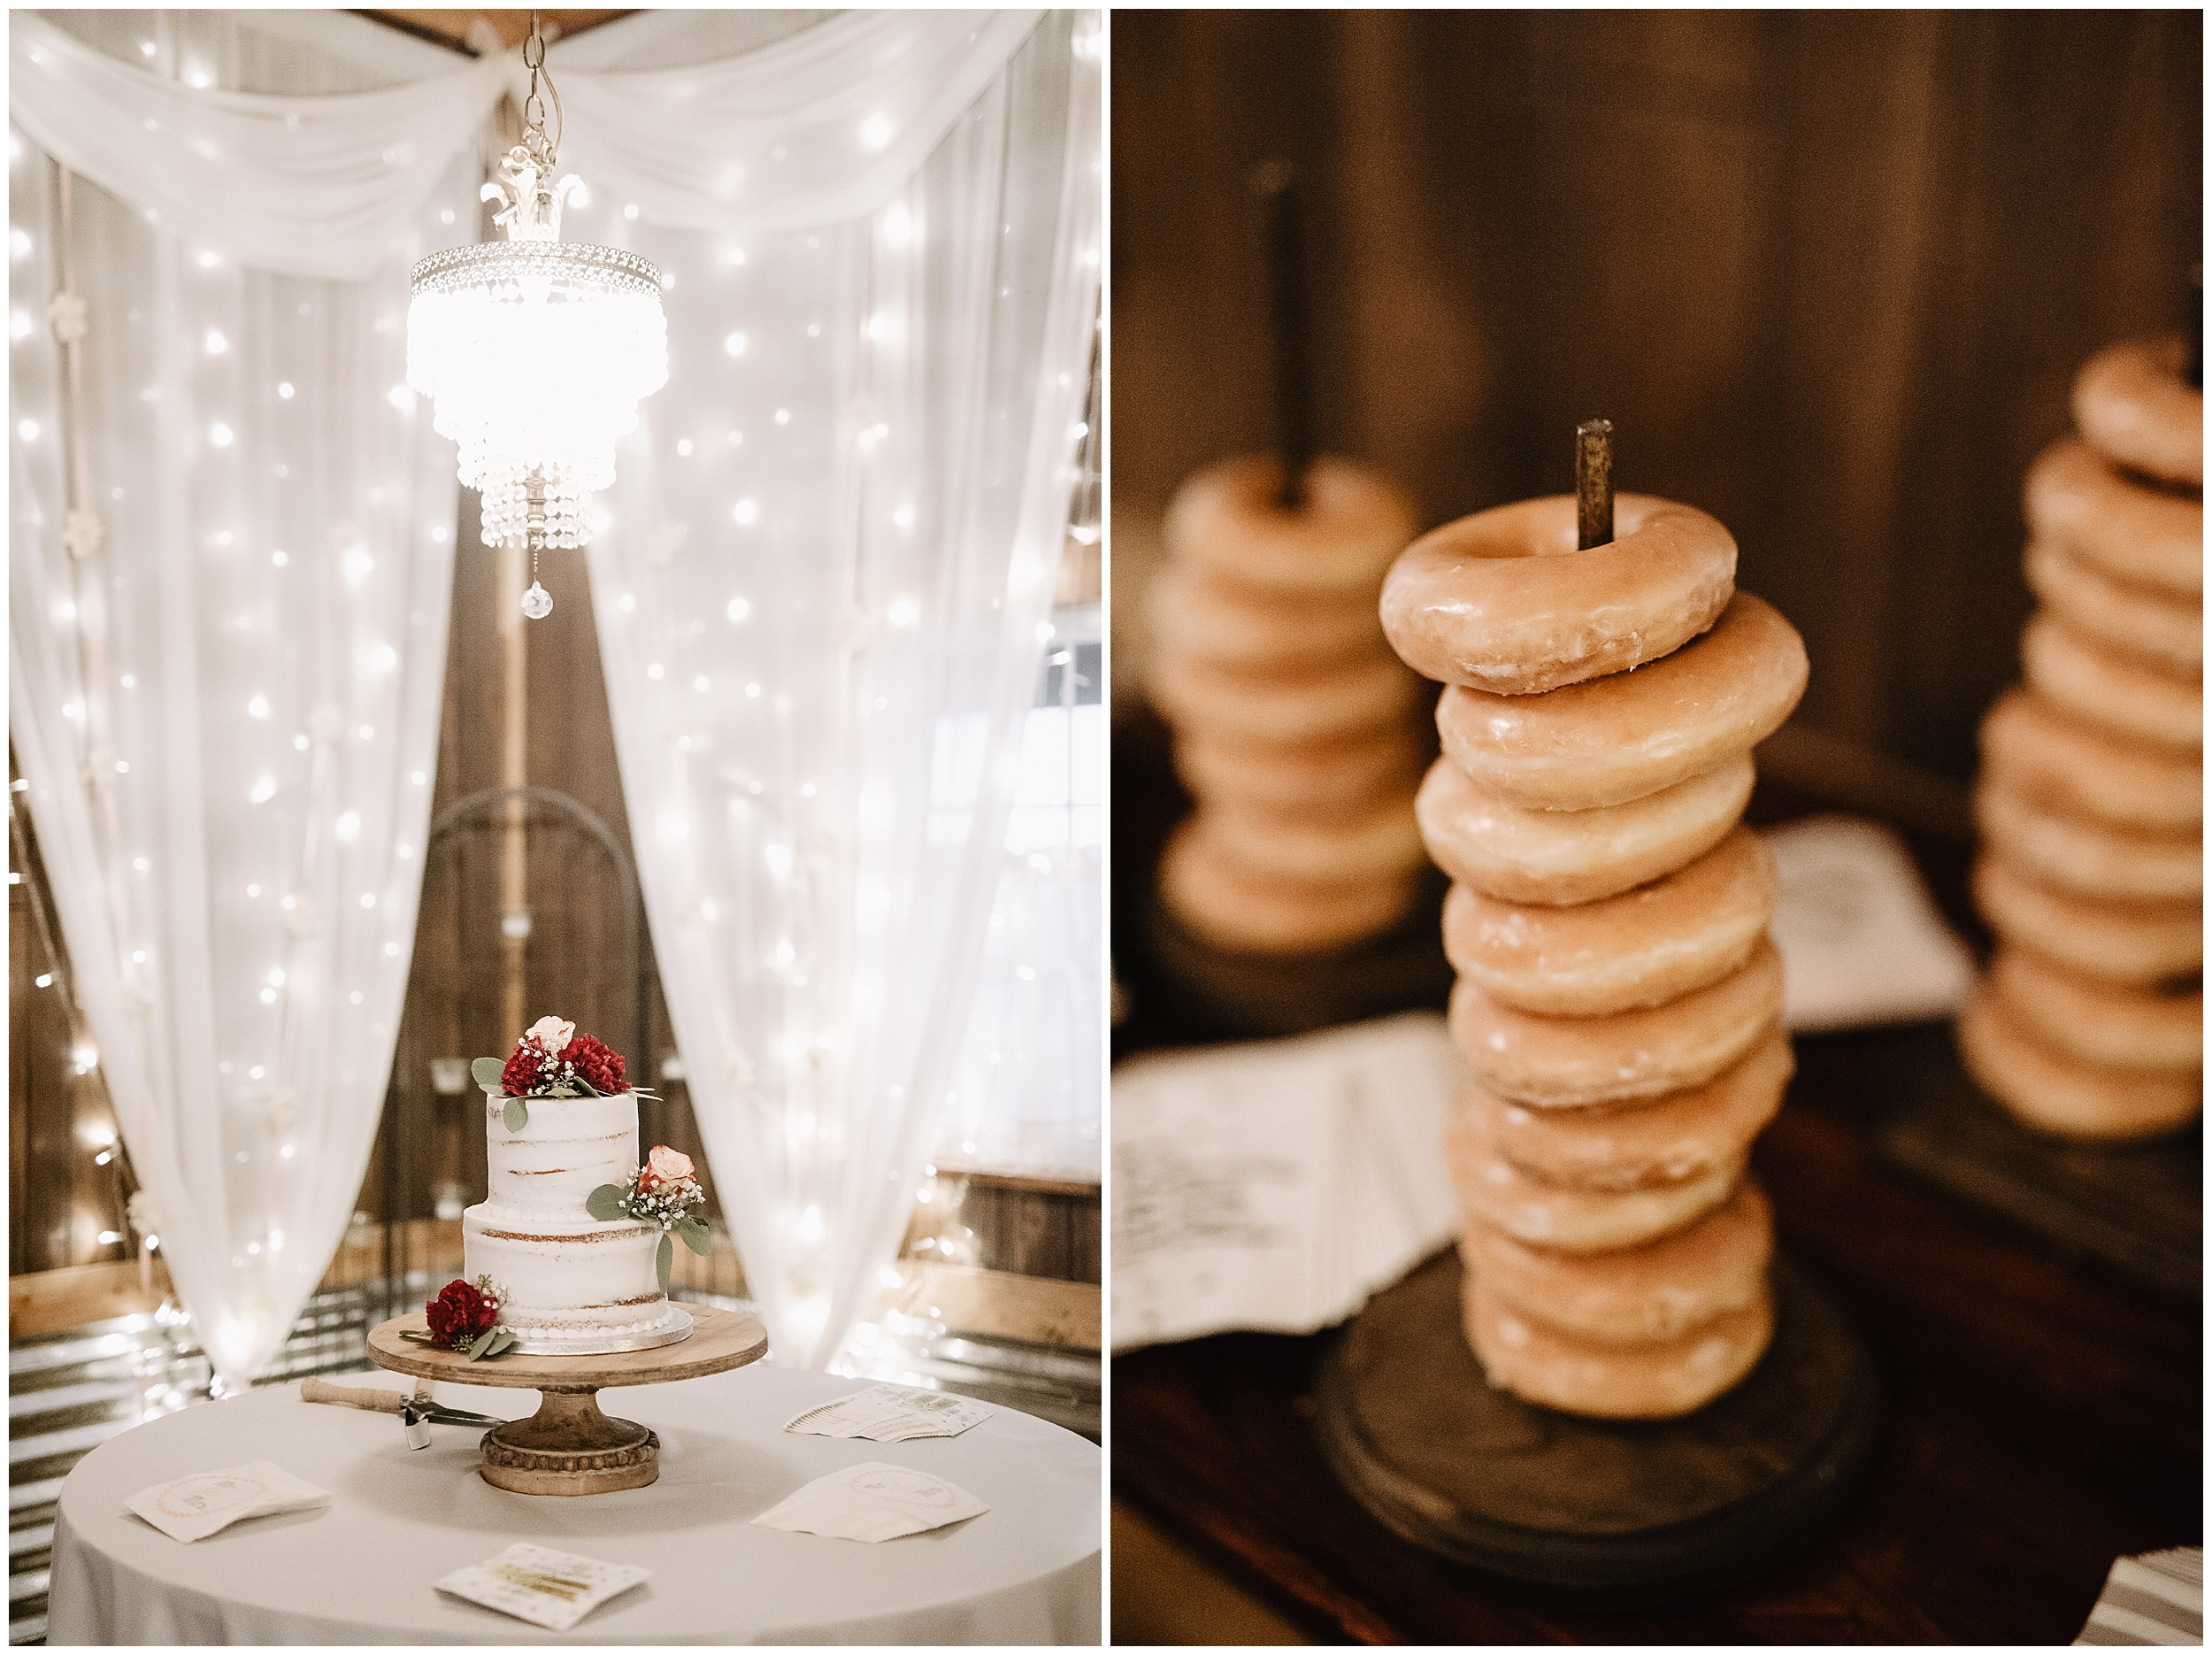 wedding photographer oklahoma reception decorations decor champagne table arrangements mr mrs mr. mrs.  viola kansas rustic timbers donuts cake